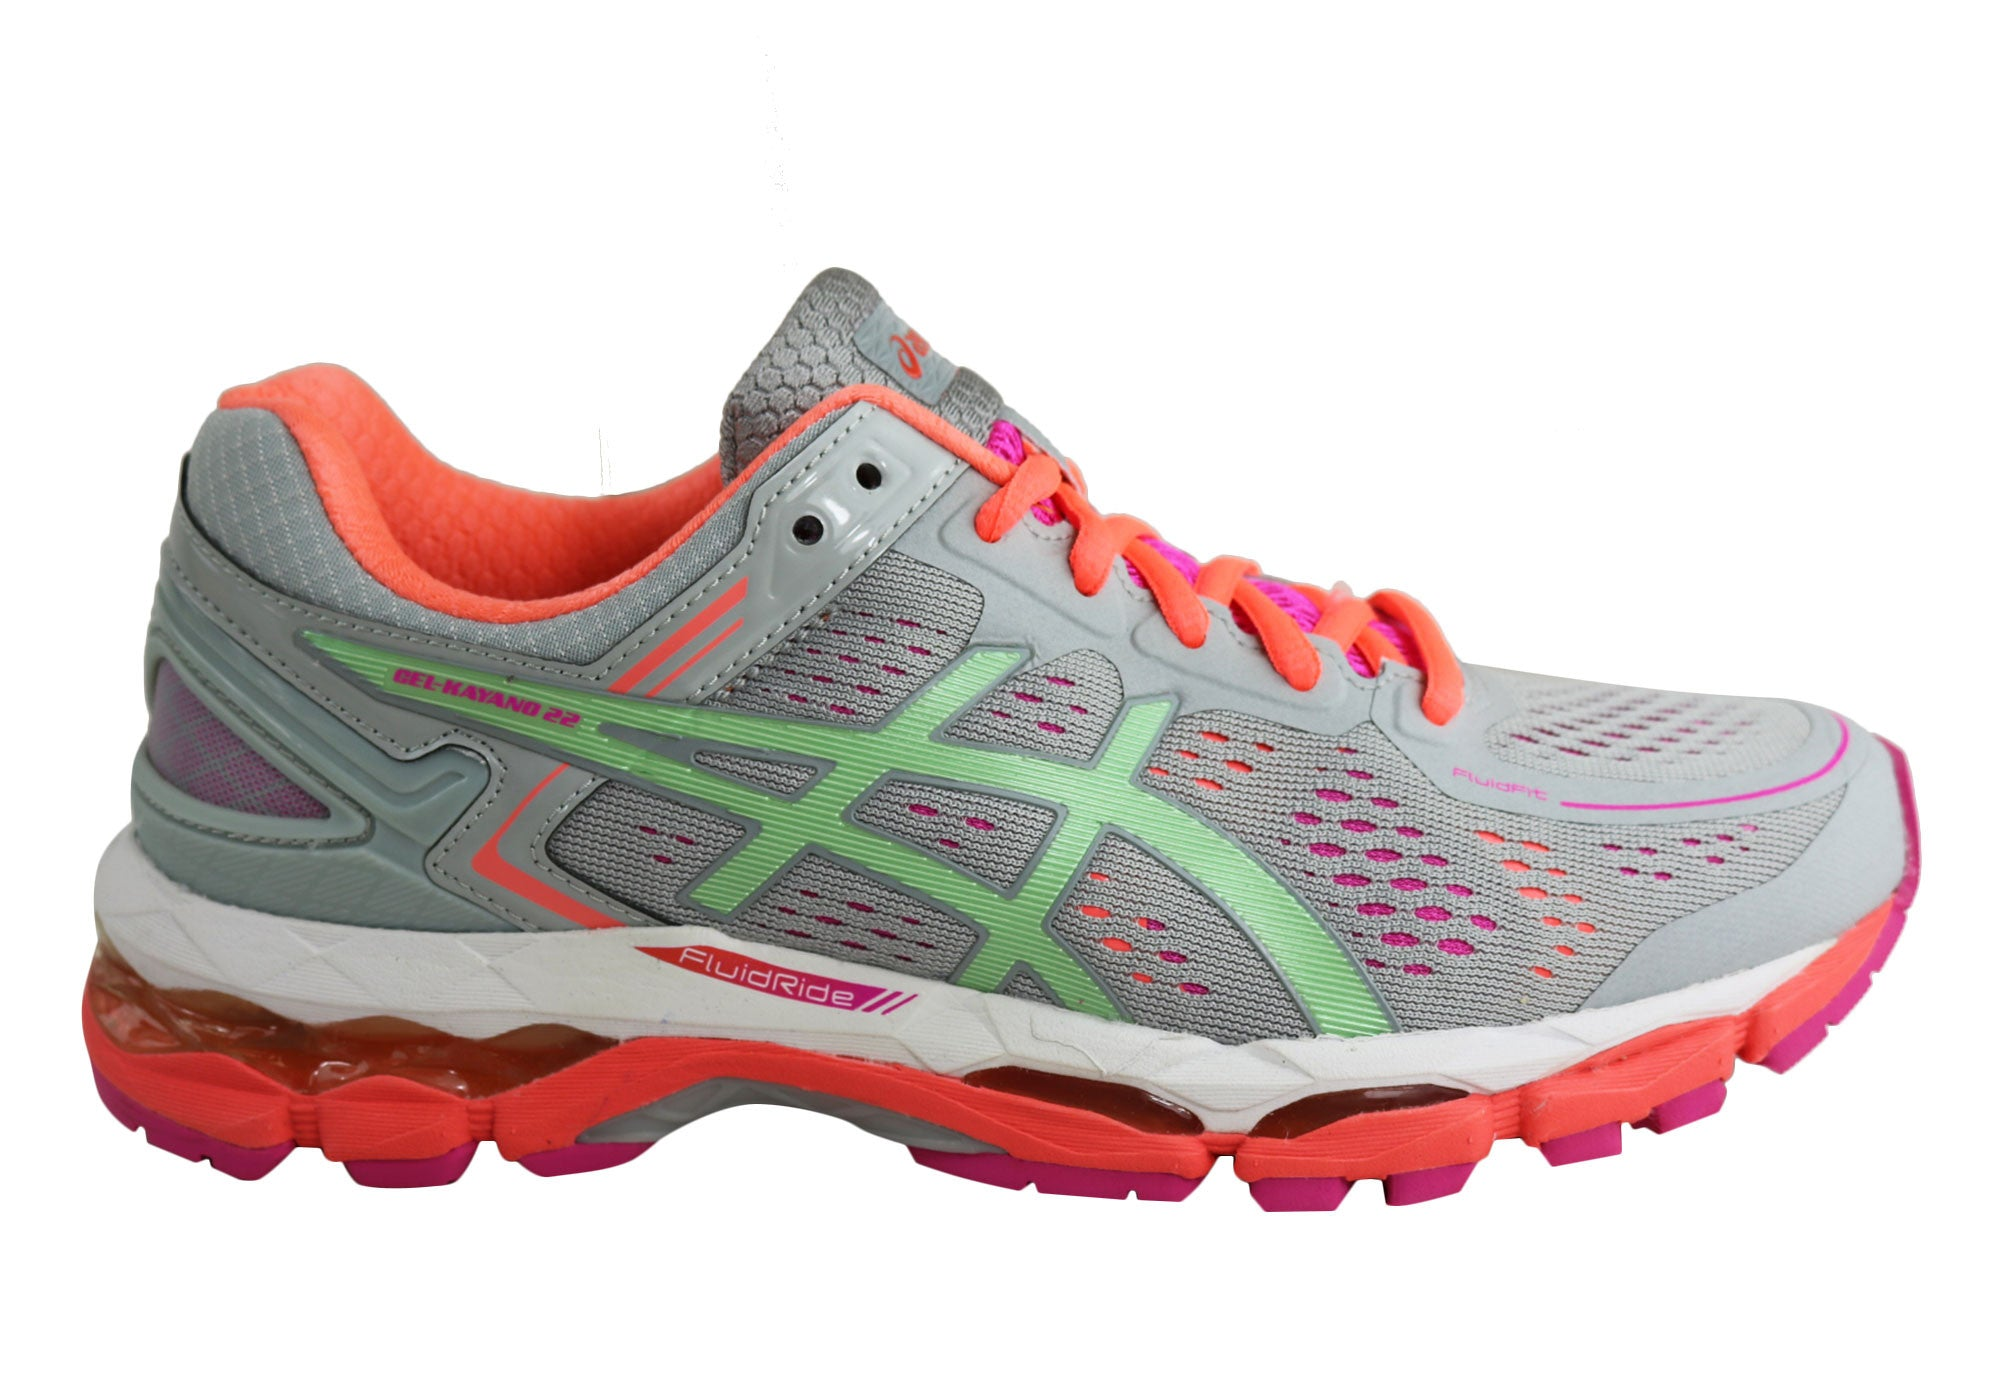 8e5714162bf2 ... where to buy home asics womens gel kayano 22 premium cushioned running  sport shoes. purple